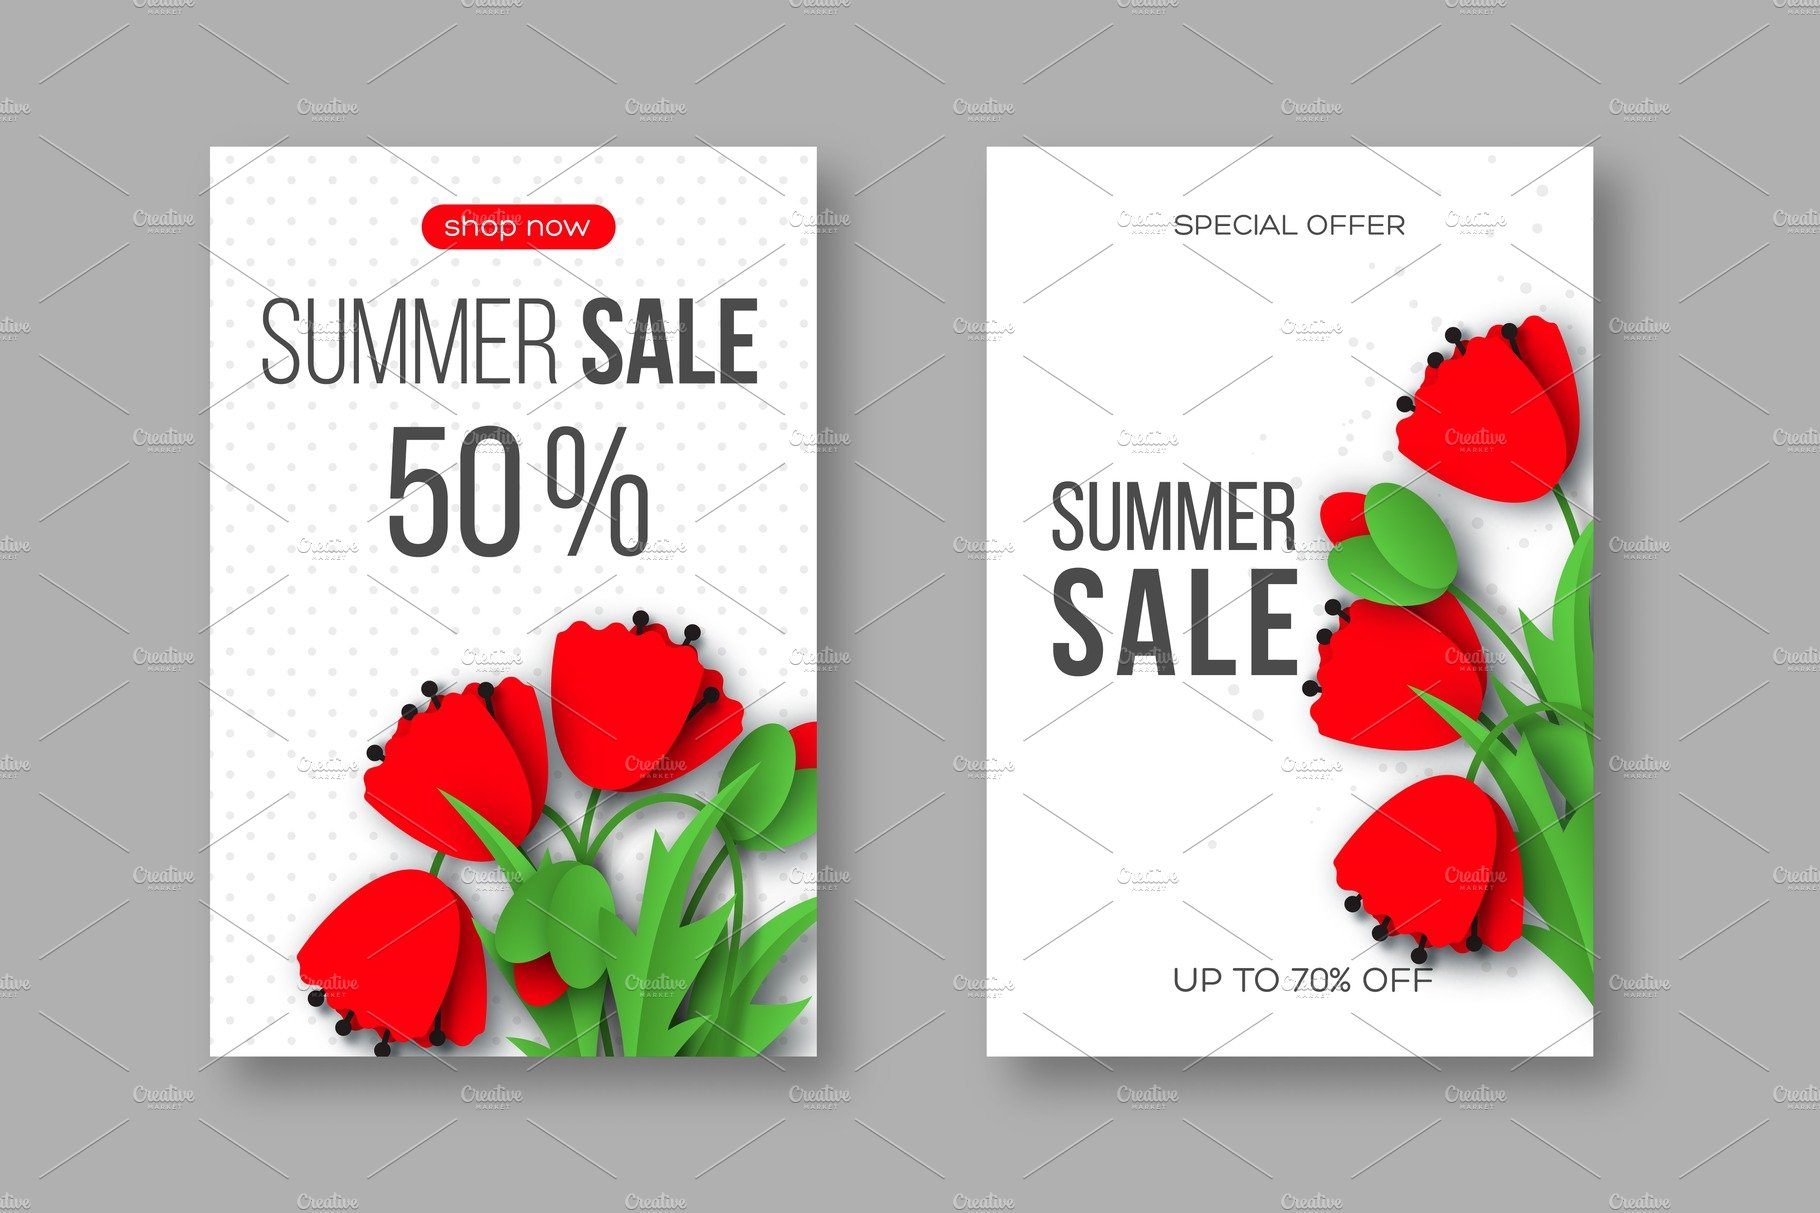 Summer Sale Banners With Paper Cut Red Poppy Flowers And Dotted Pattern White Background